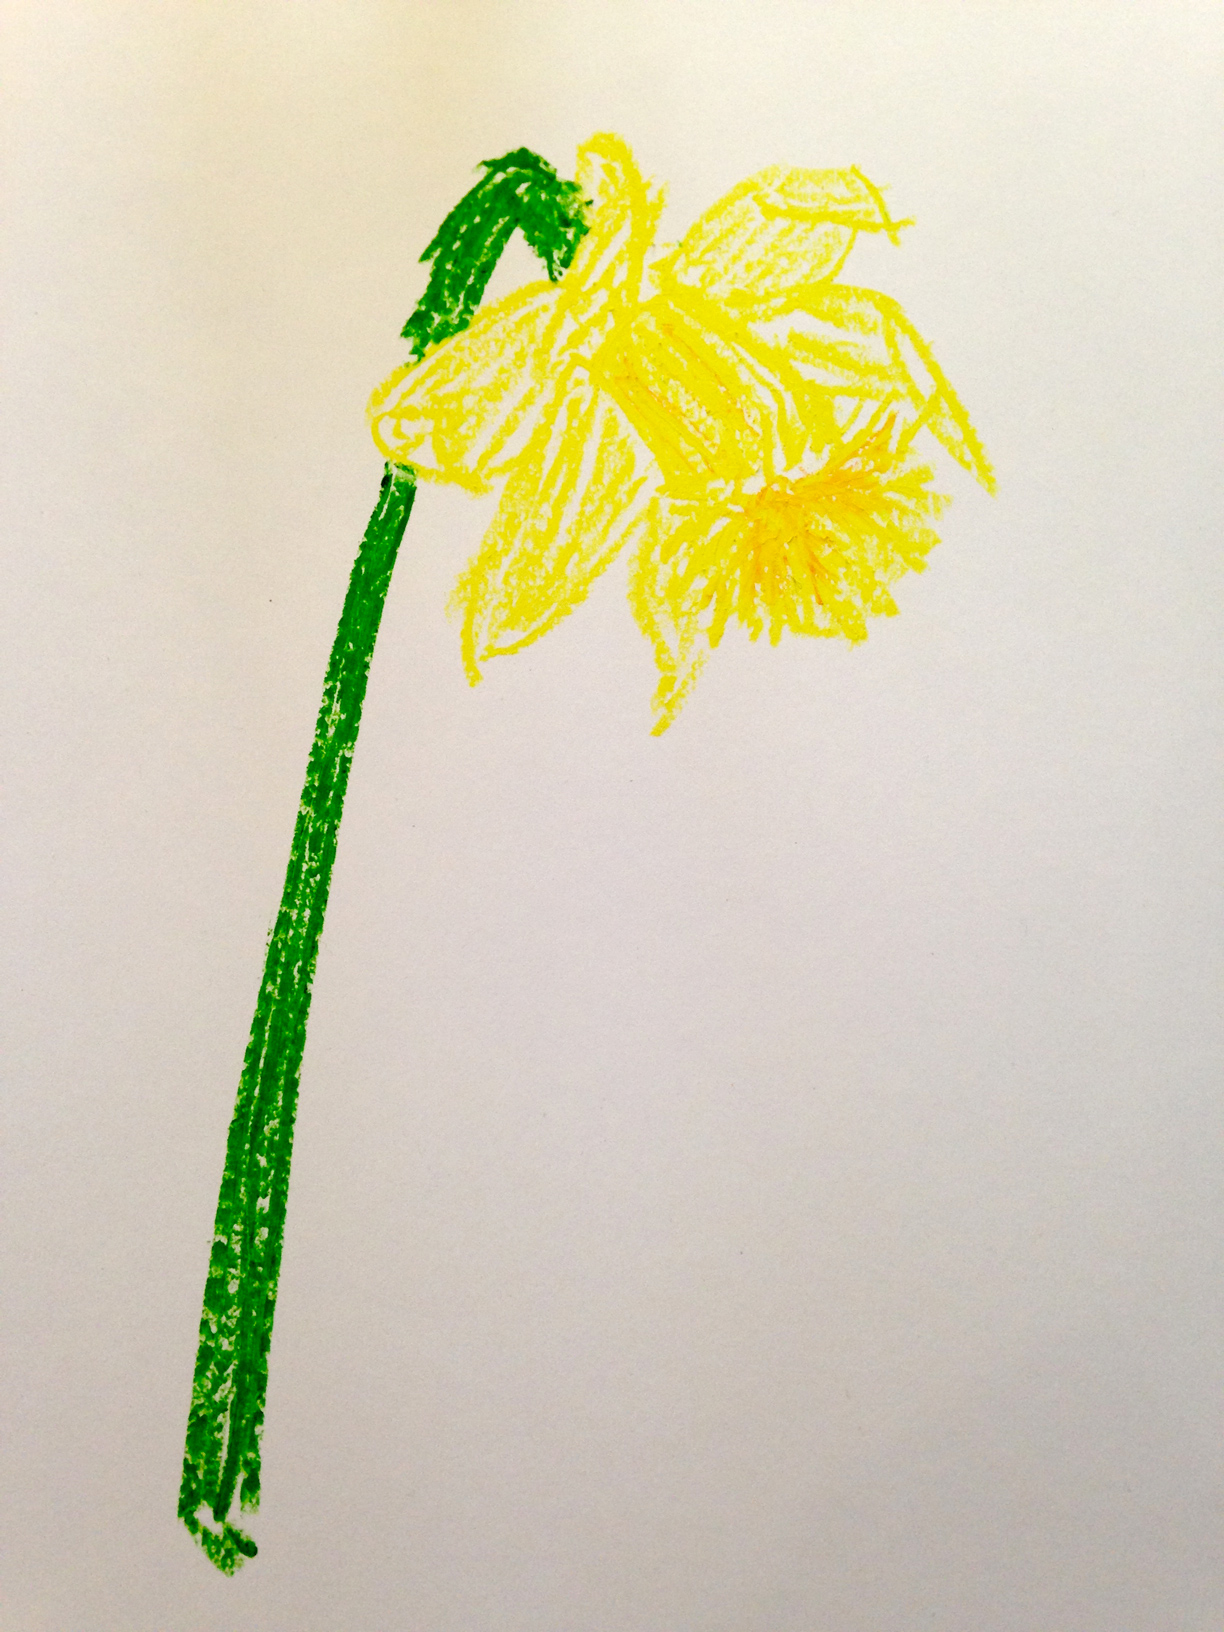 Daffodil in pastels, Van Gogh style